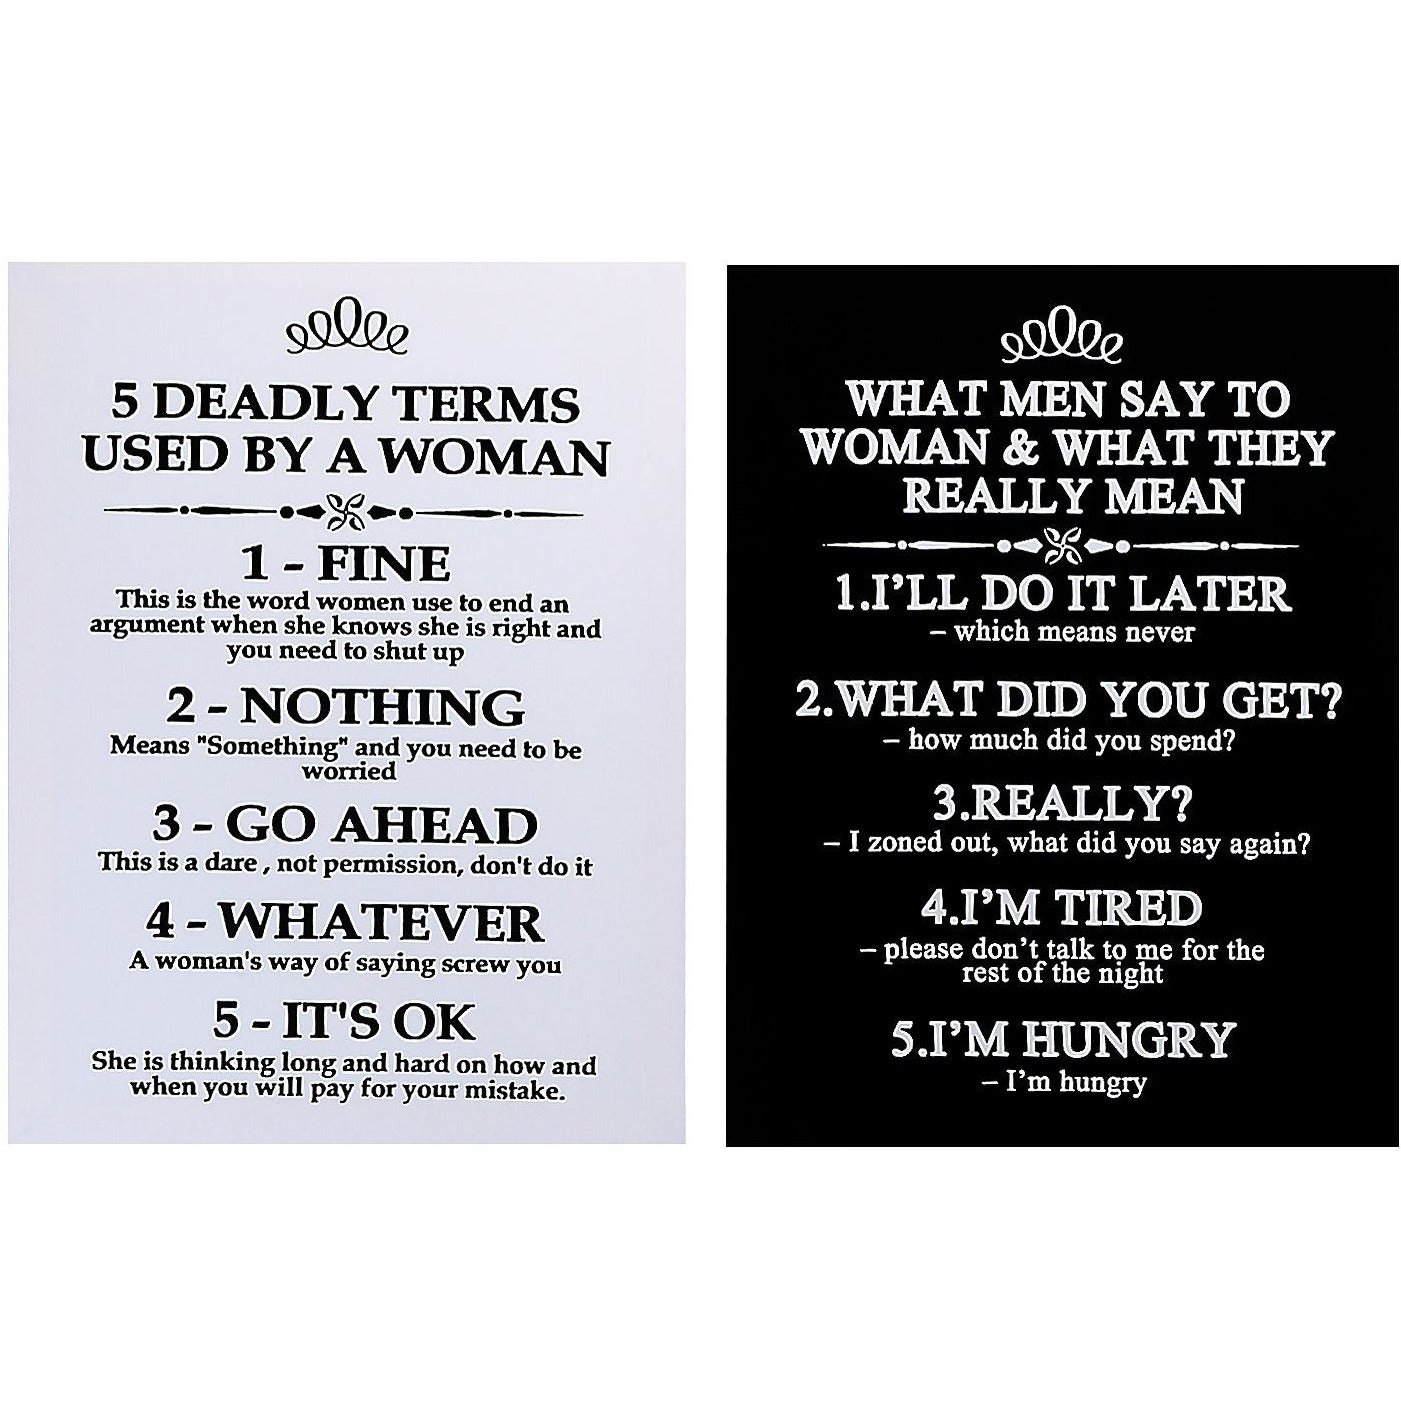 What men really mean